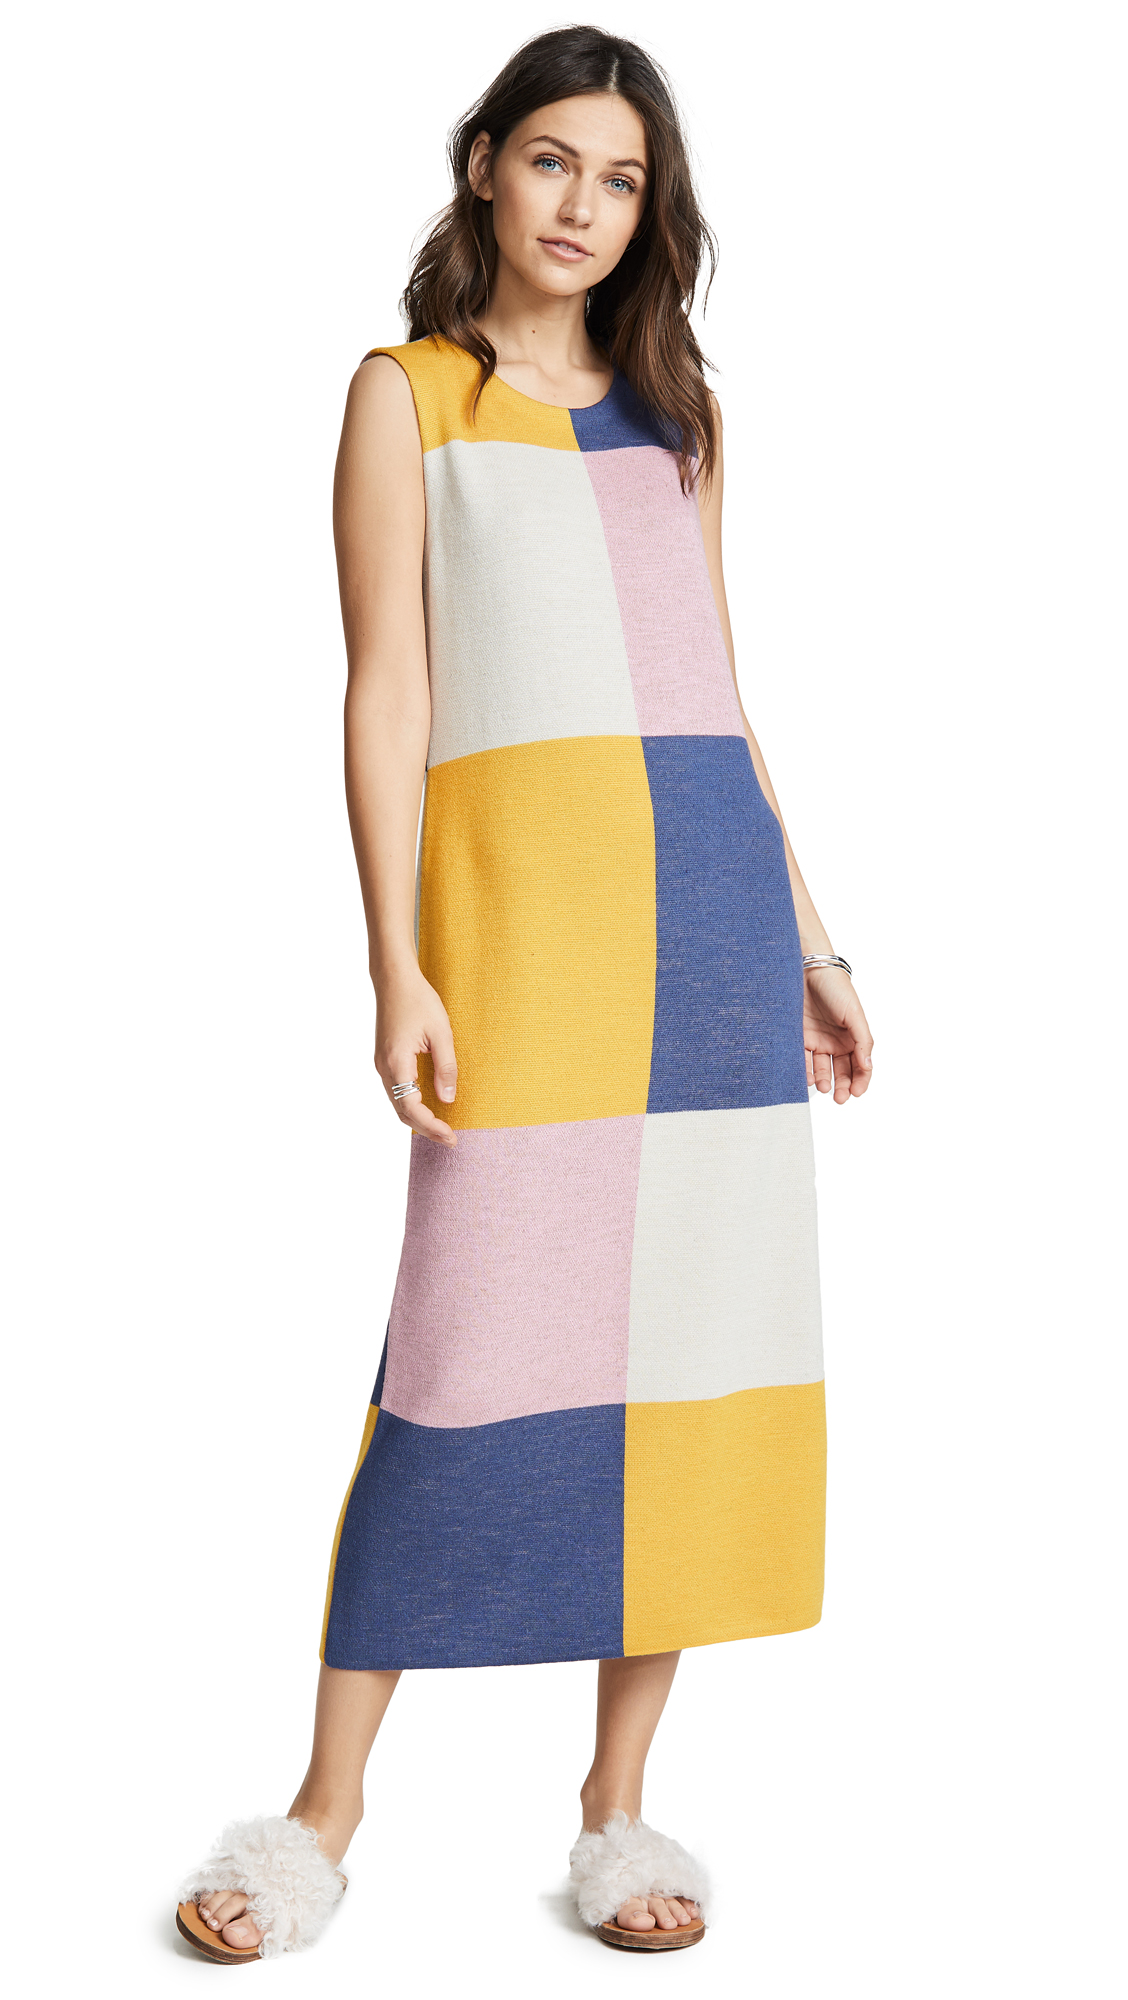 Tory Burch Clayton Dress - Golden Crest